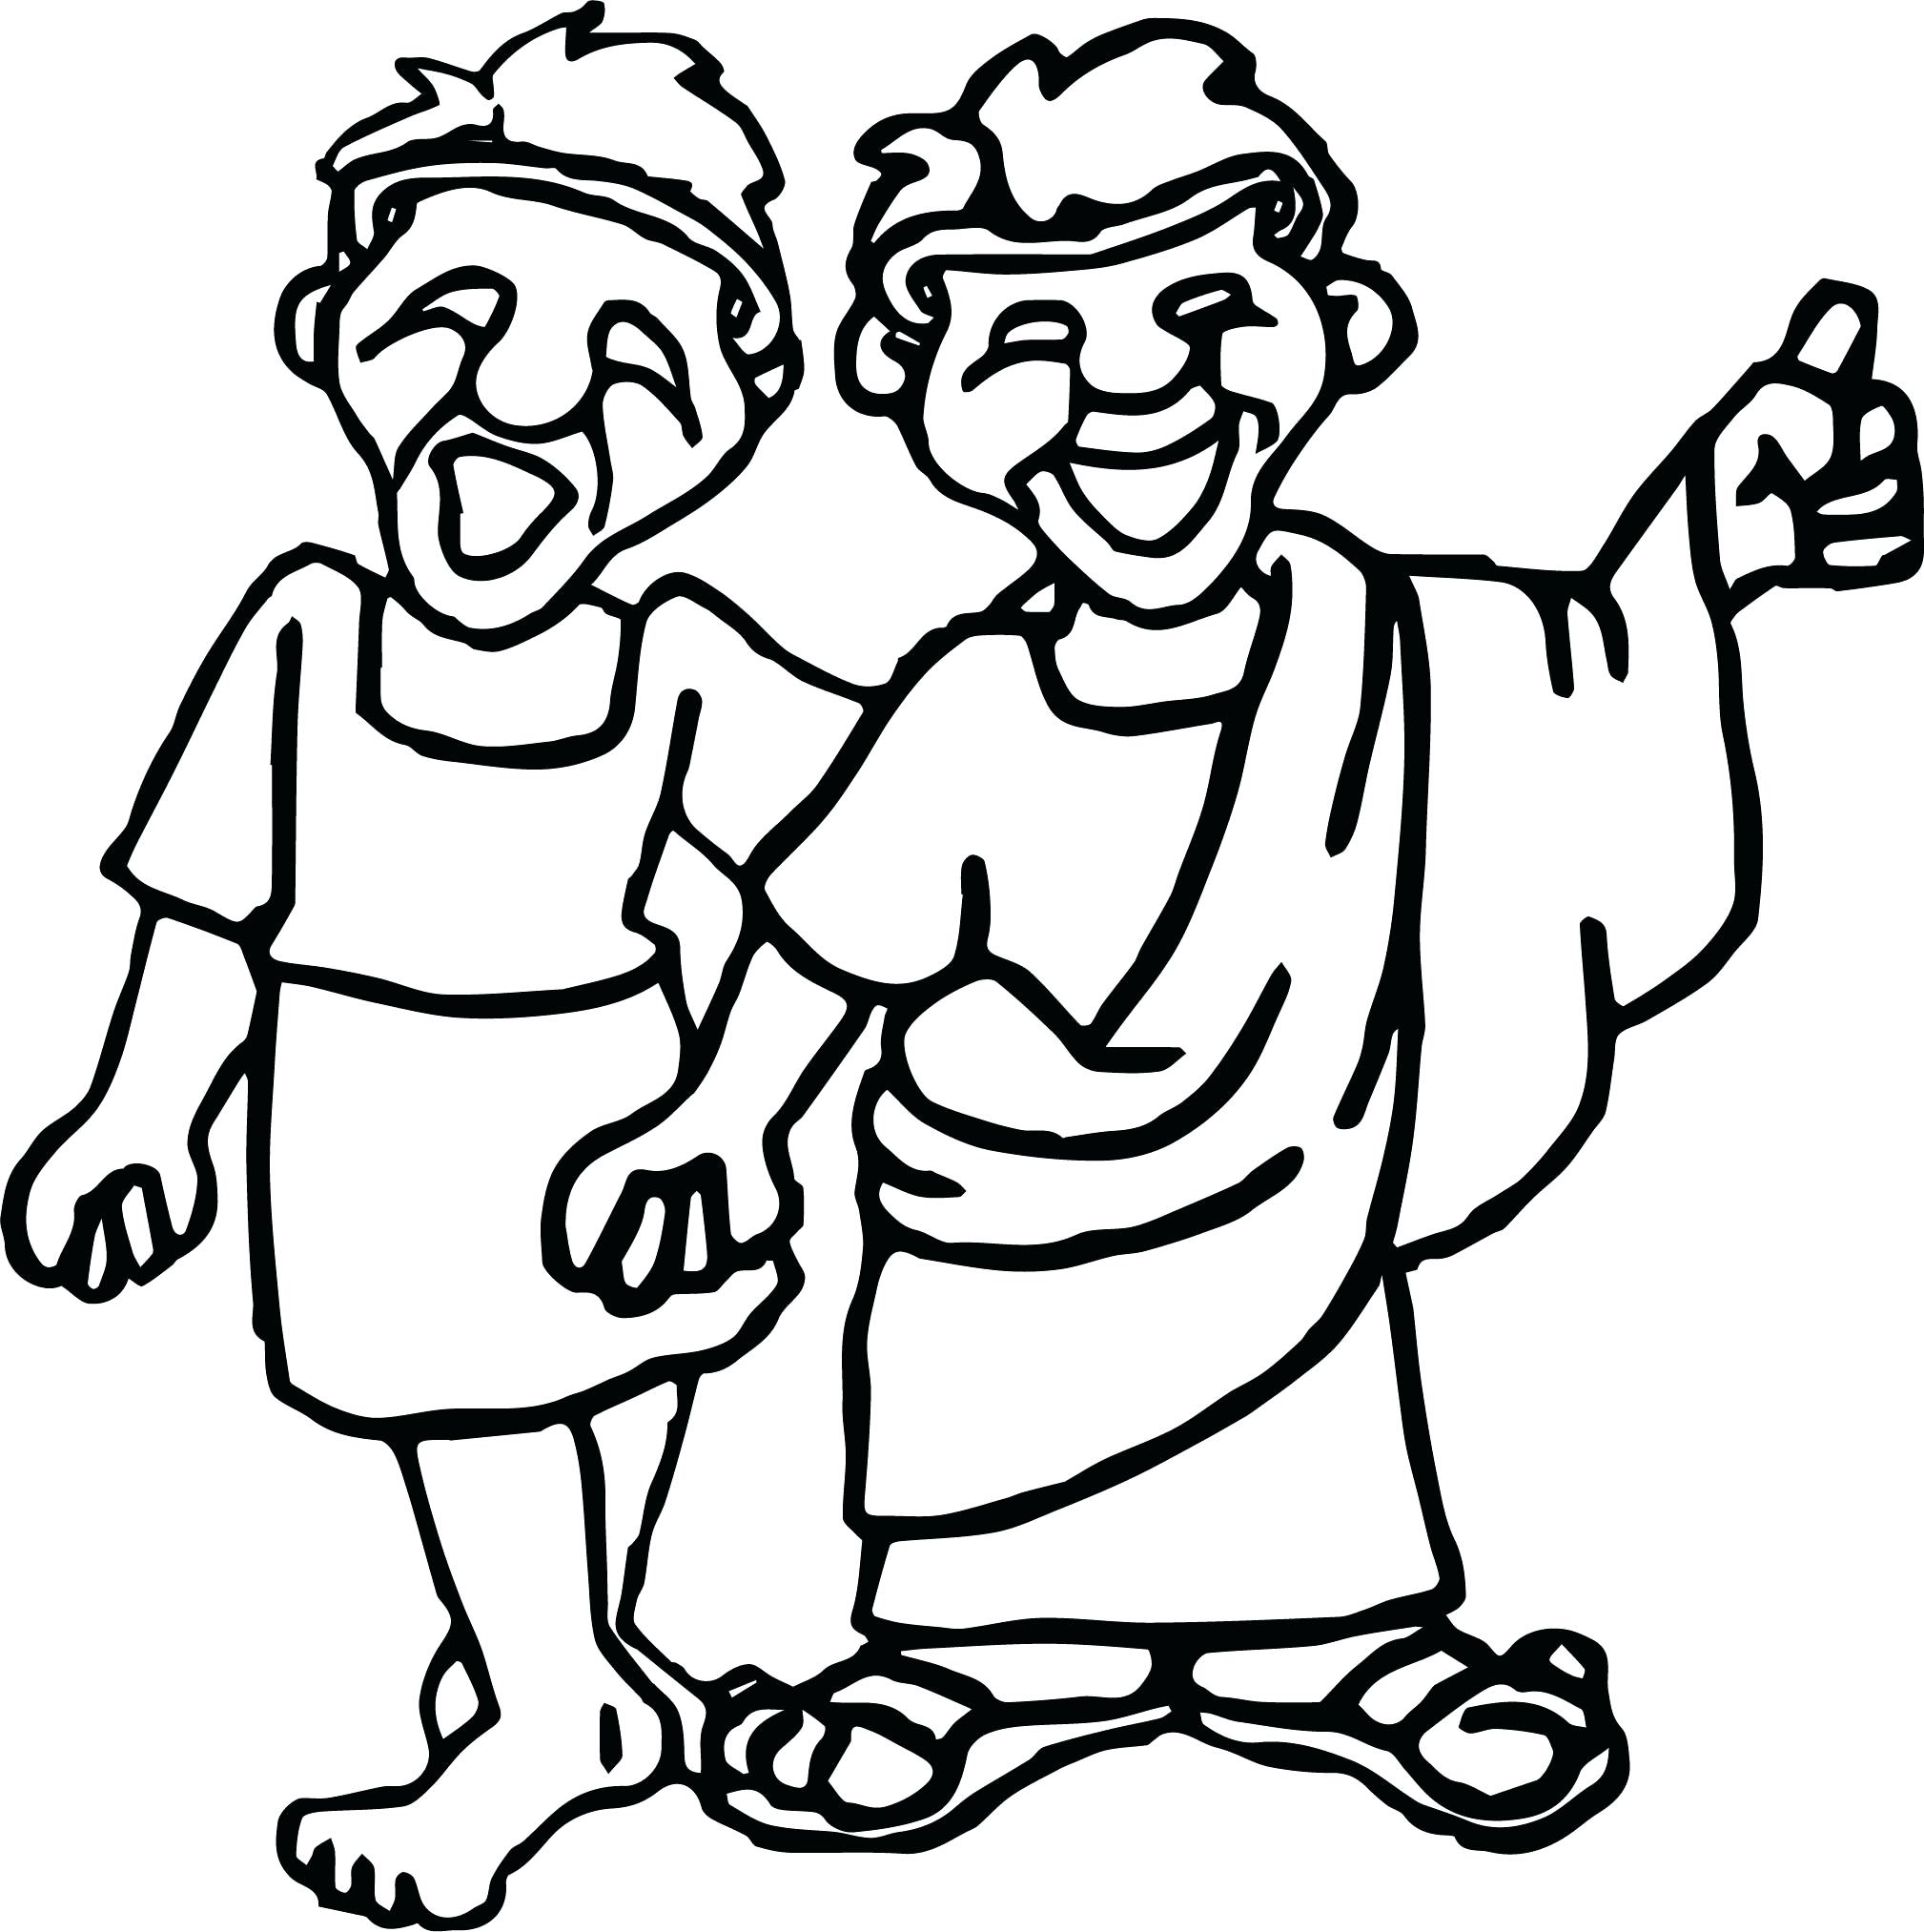 Julius Caesar Coloring Pages At Getcolorings